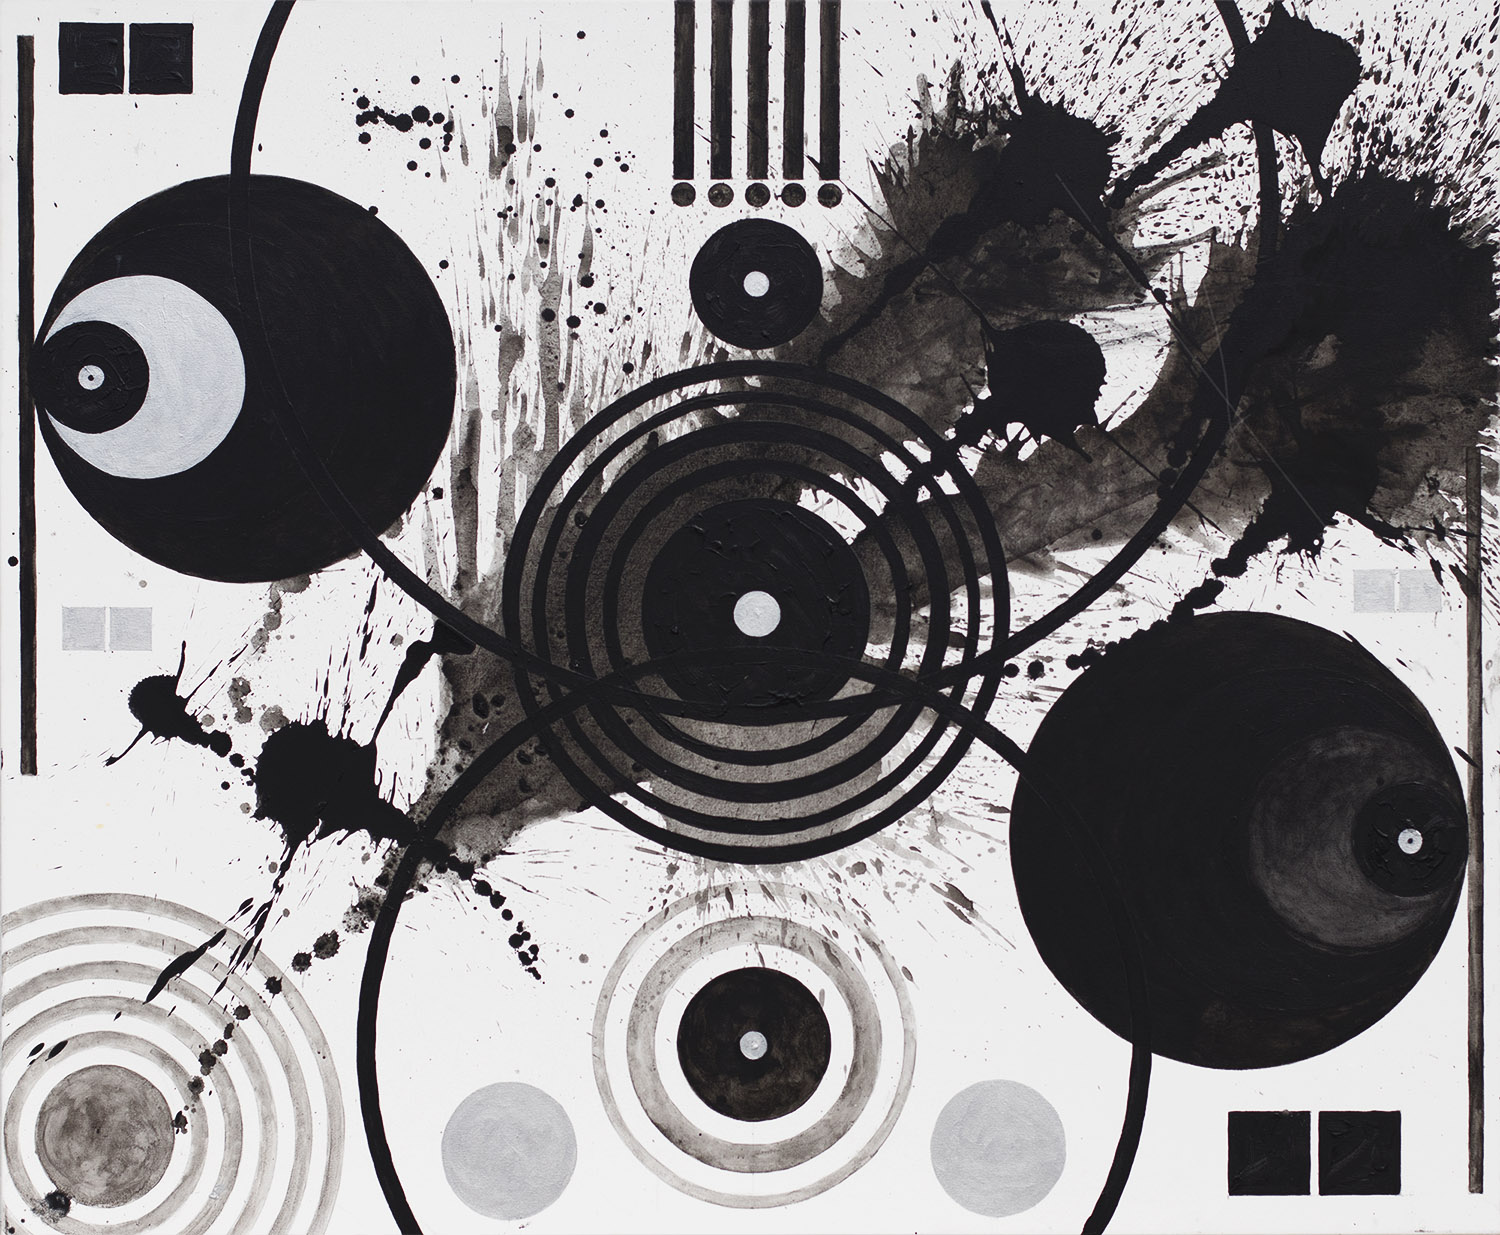 J. Steven Manolis, Black and White (Splashes, Symbols, and Marks), Acrylic on canvas, 2018, 60 x 72 inches